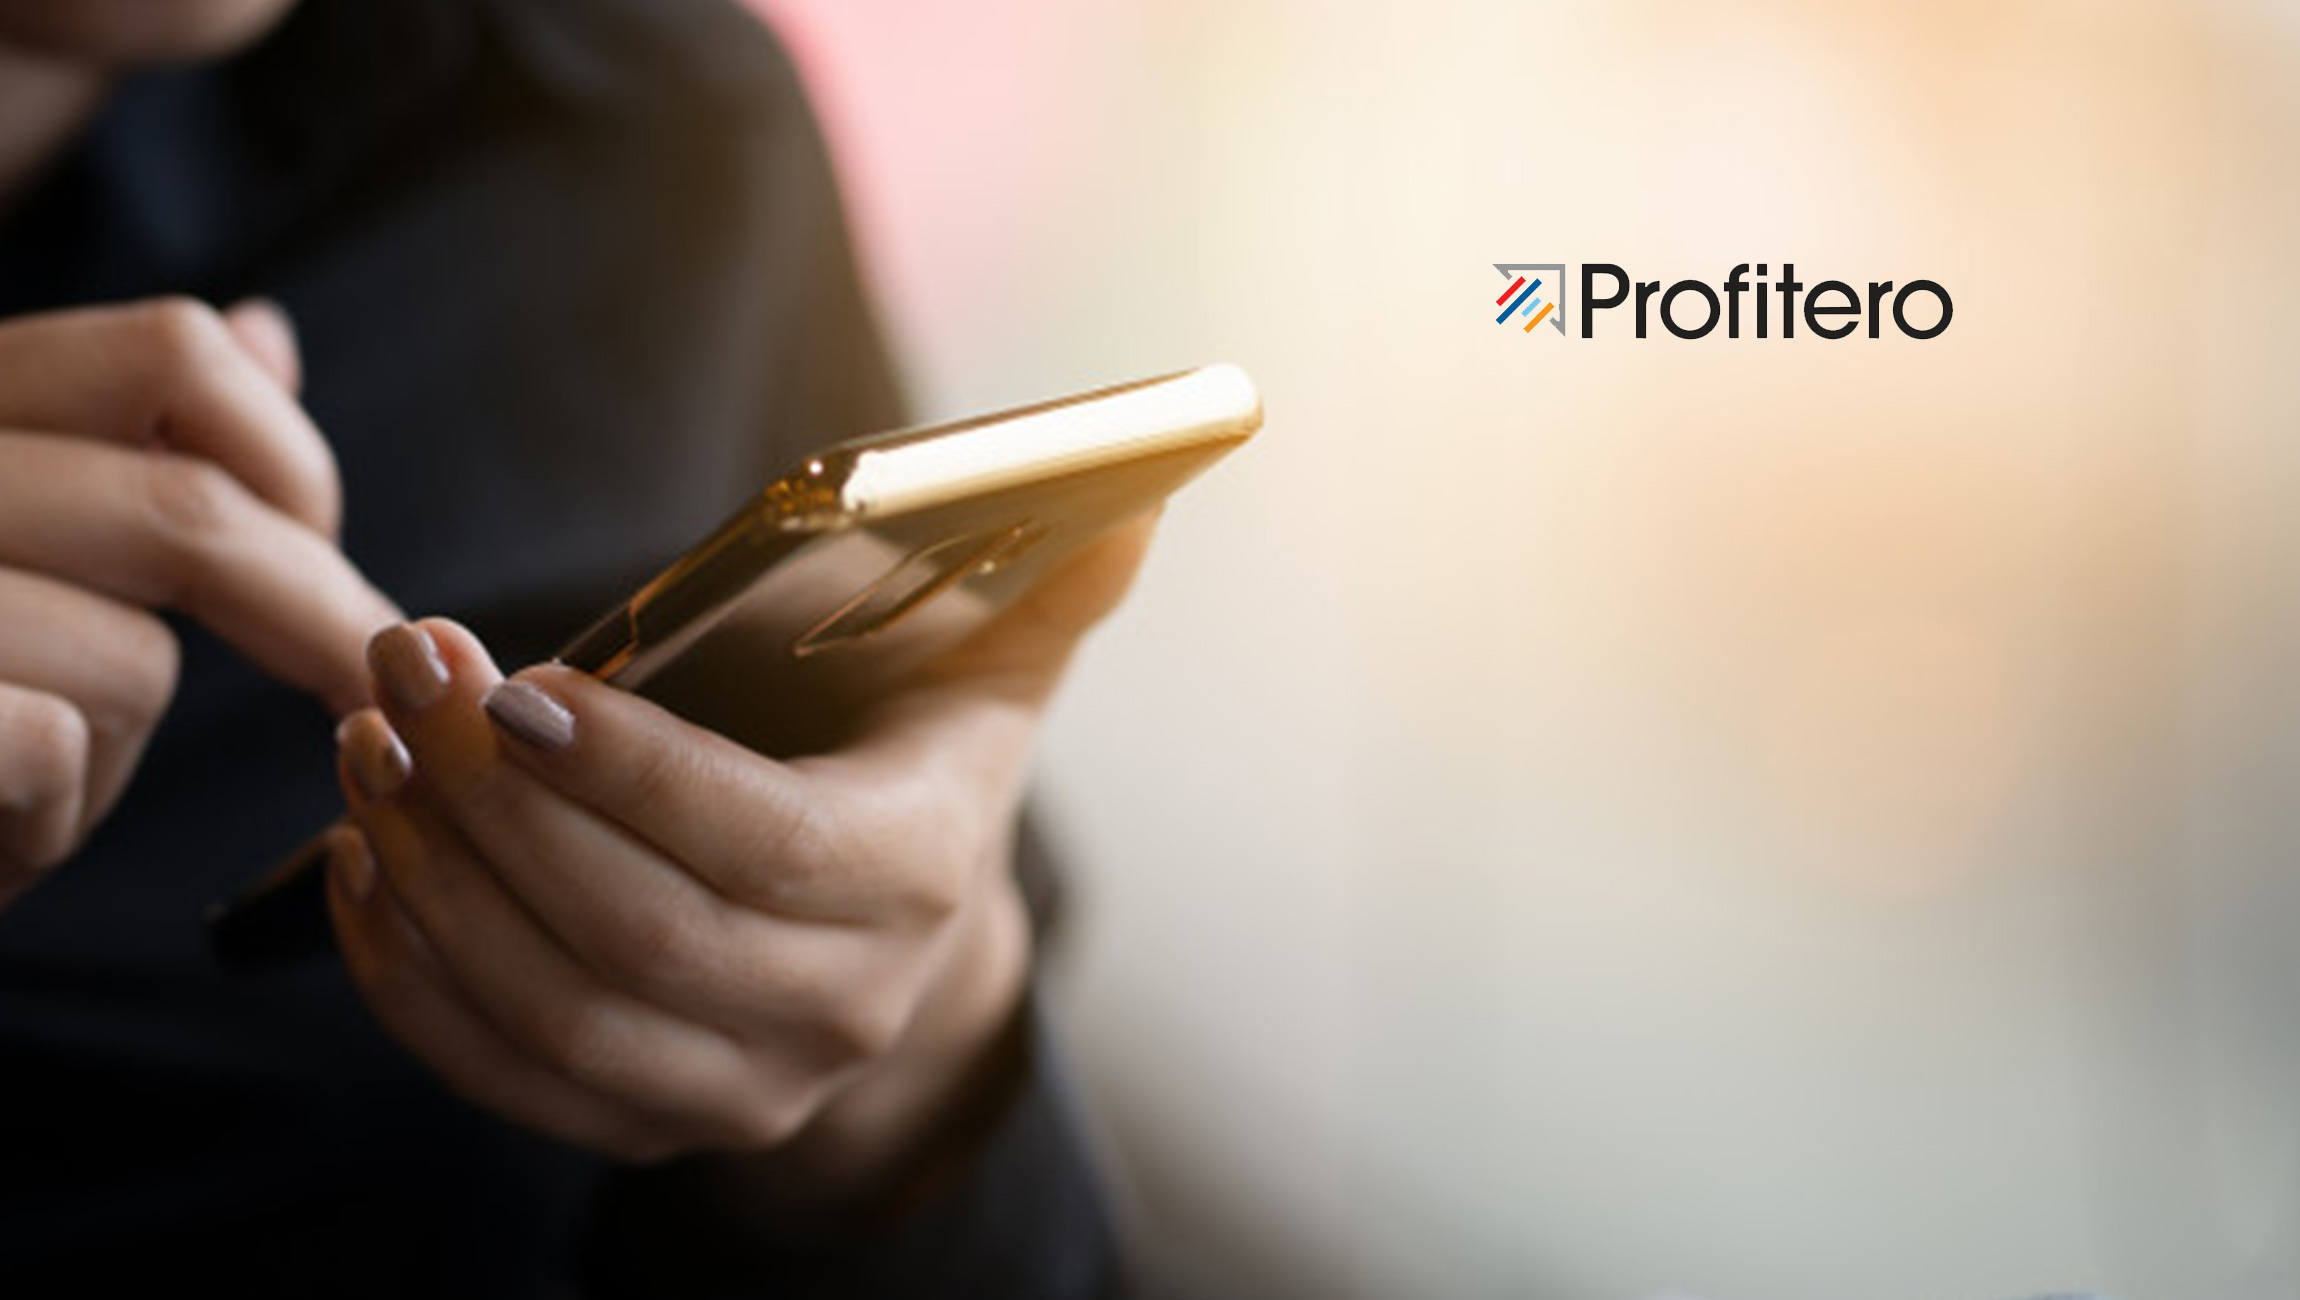 Profitero Launches the Industry's Most Complete and Precise Analytics Solution for Maximizing Amazon Sales Performance